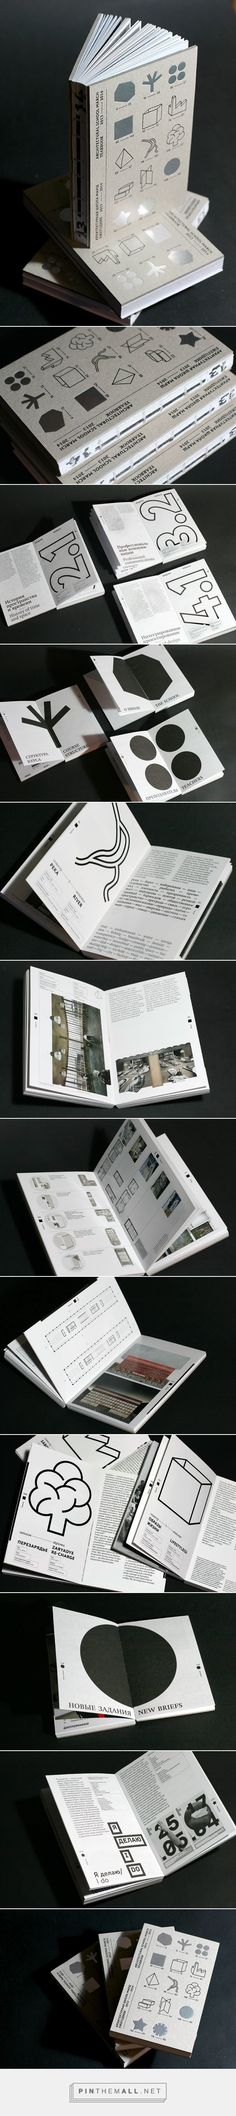 Yearbook Architectural School MARCH 2013–2014 on Behance